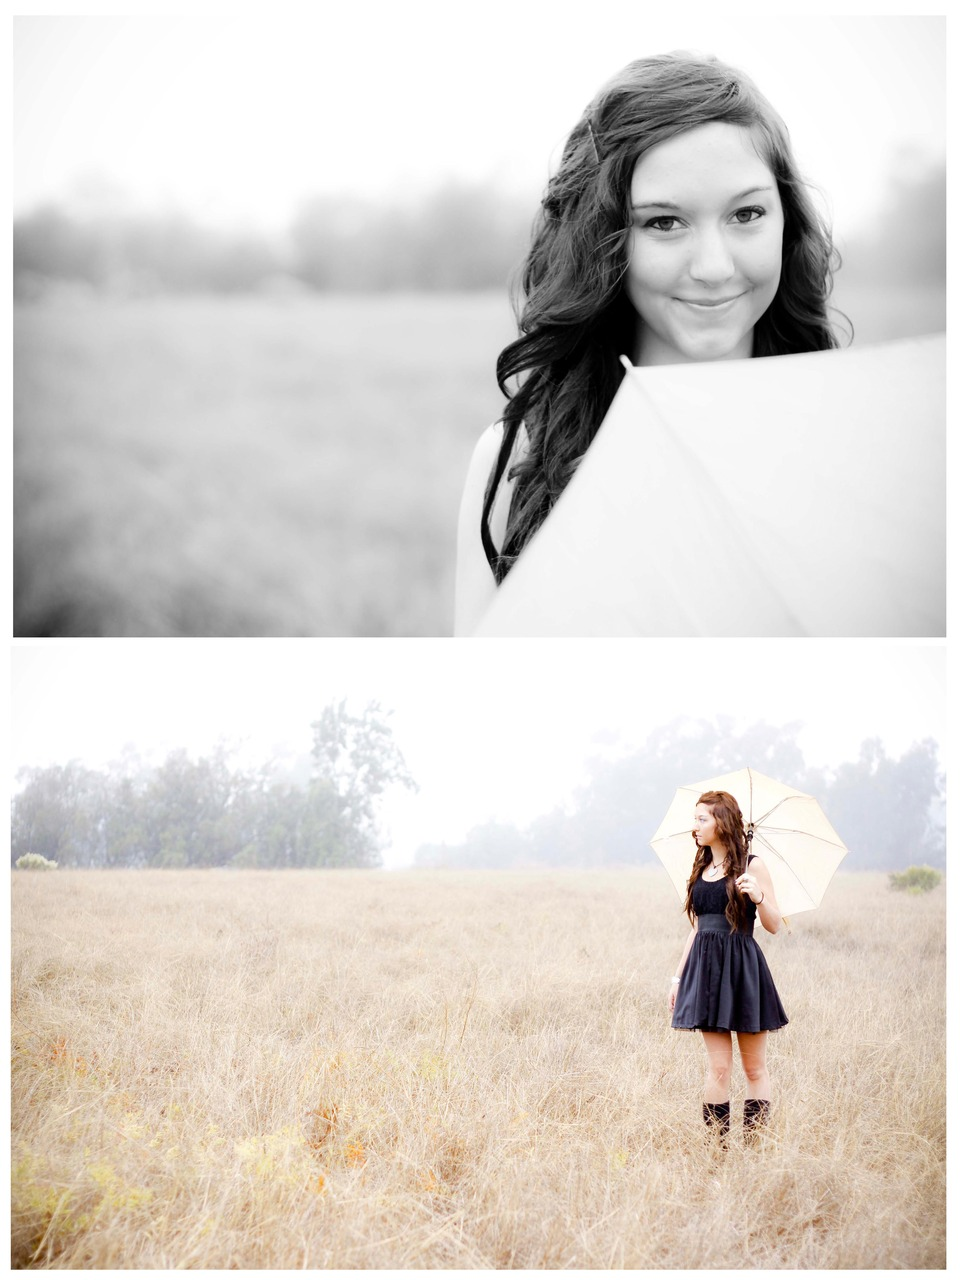 A little sneak-peek of my senior shoot with Shelby! Beautiful girl and amazing misty weather made for some fun shots with an umbrella :)    More to come soon!